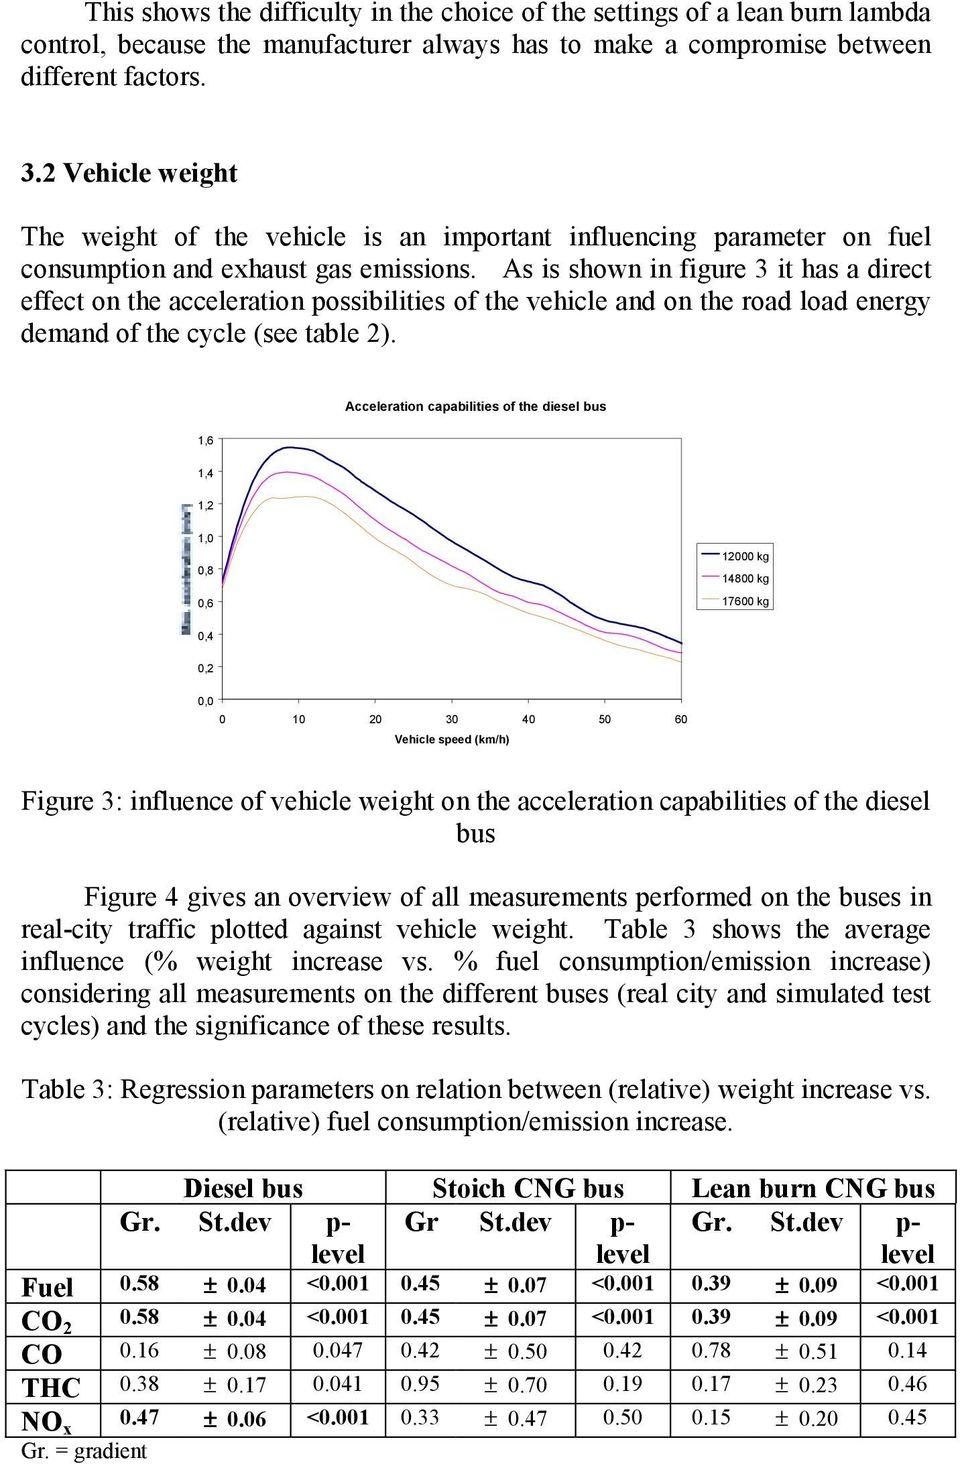 As is shown in figure 3 it has a direct effect on the acceleration possibilities of the vehicle and on the road load energy demand of the cycle (see table 2).